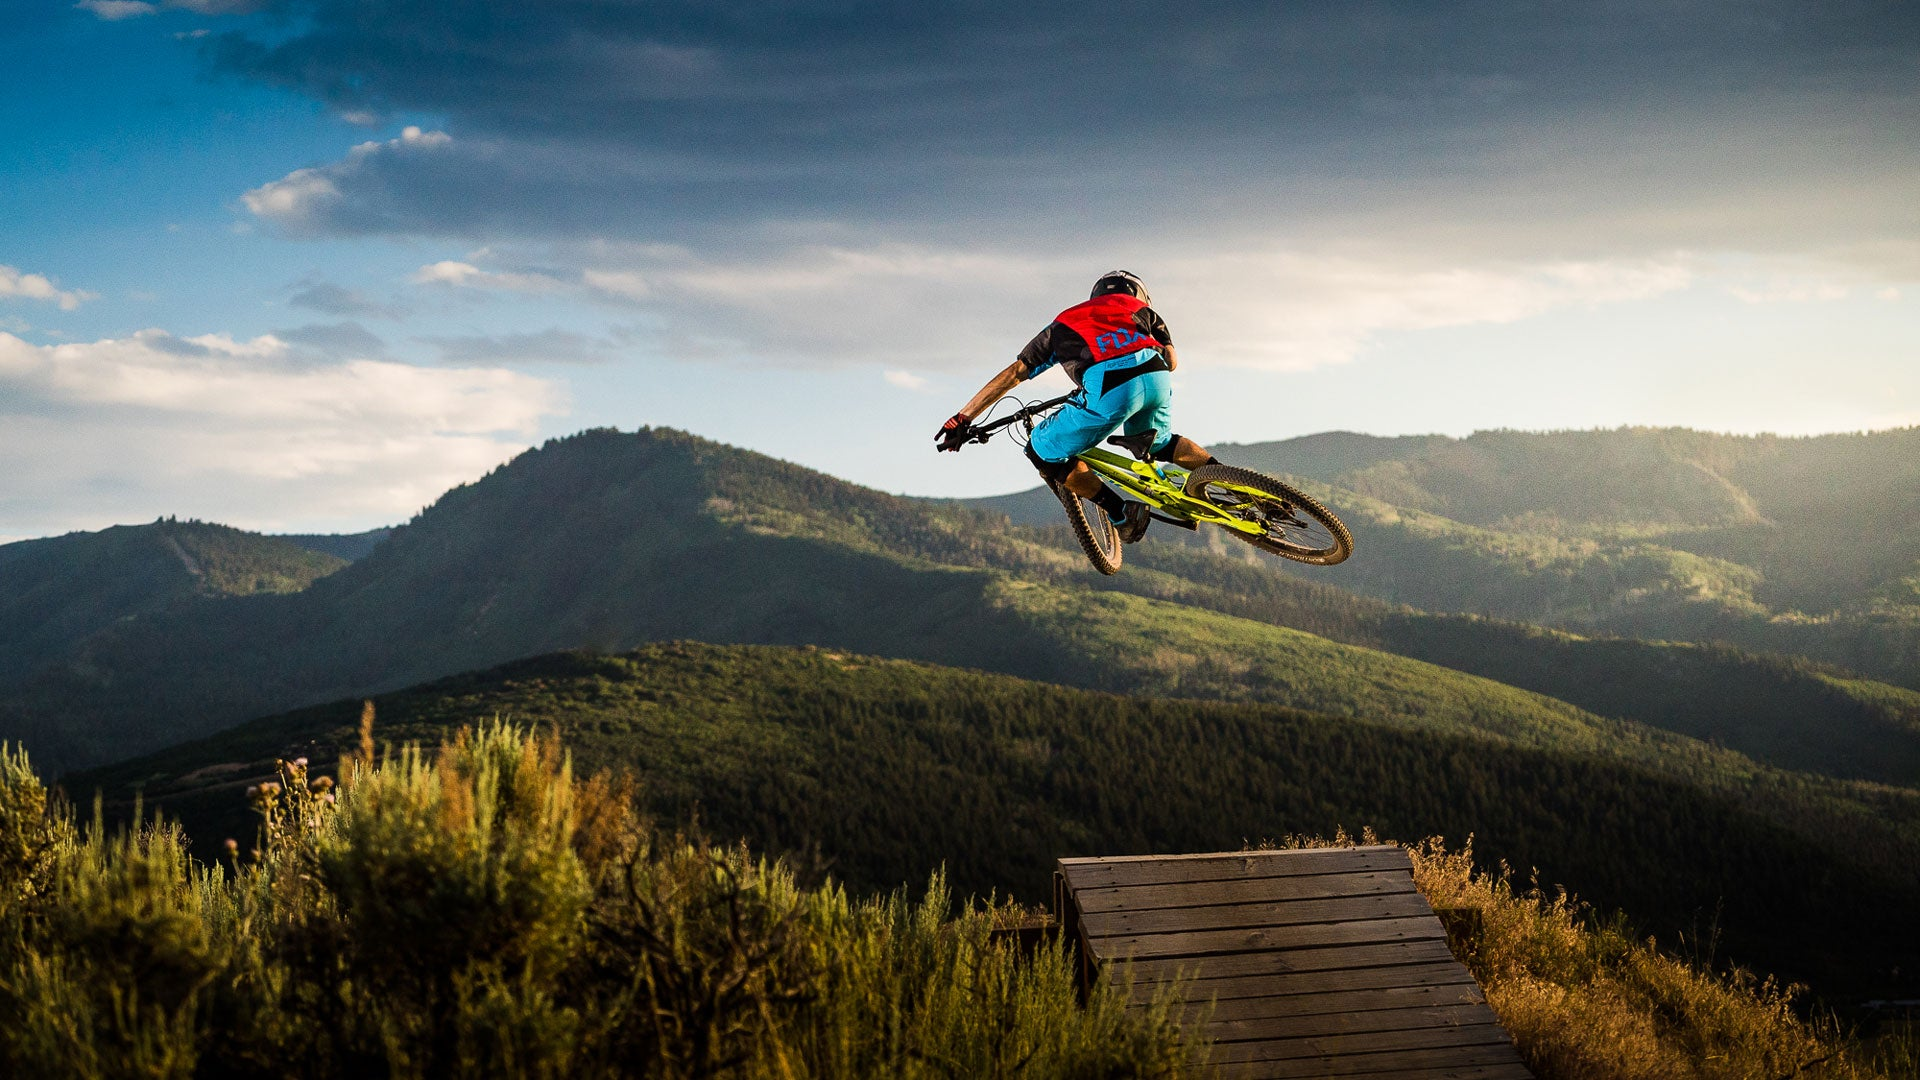 How to take great mountain bike photos - Step five: Make your buddies wear bright colored gear.